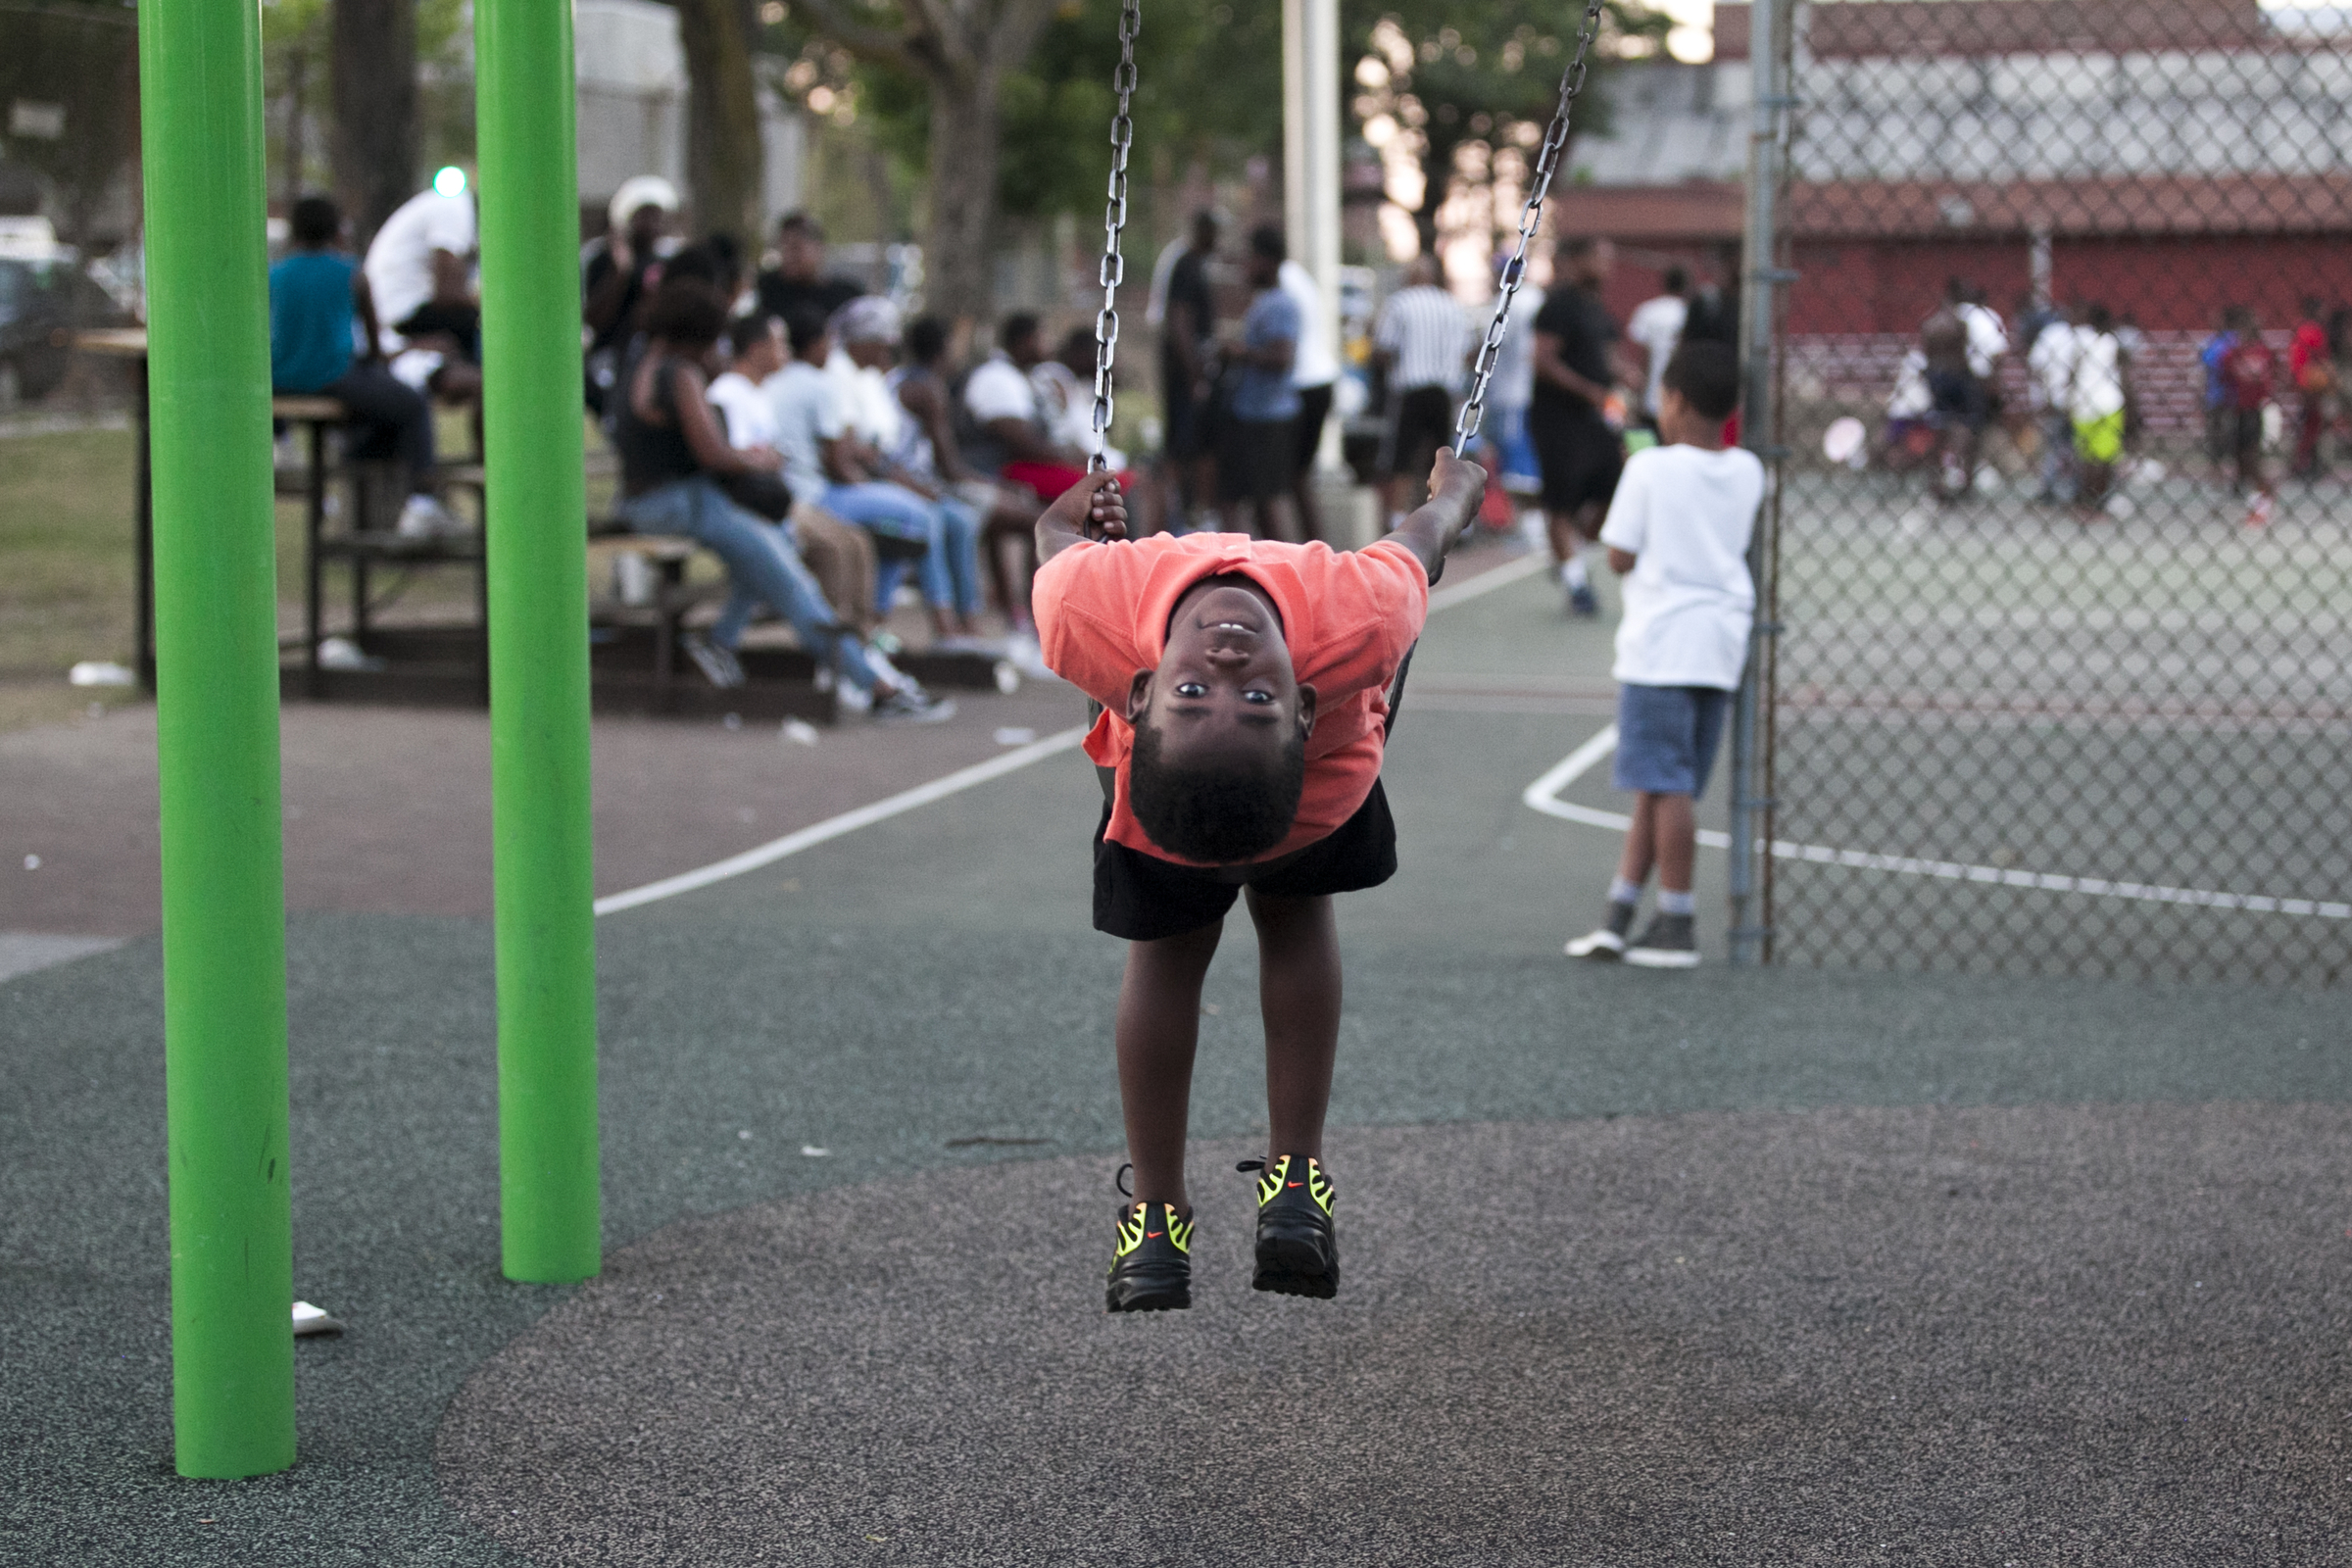 A young Philadelphia looks backwards from his swing at Dendy Playground on the evening of Wednesday, July 18, 2018. | Maggie Loesch for PlanPhilly